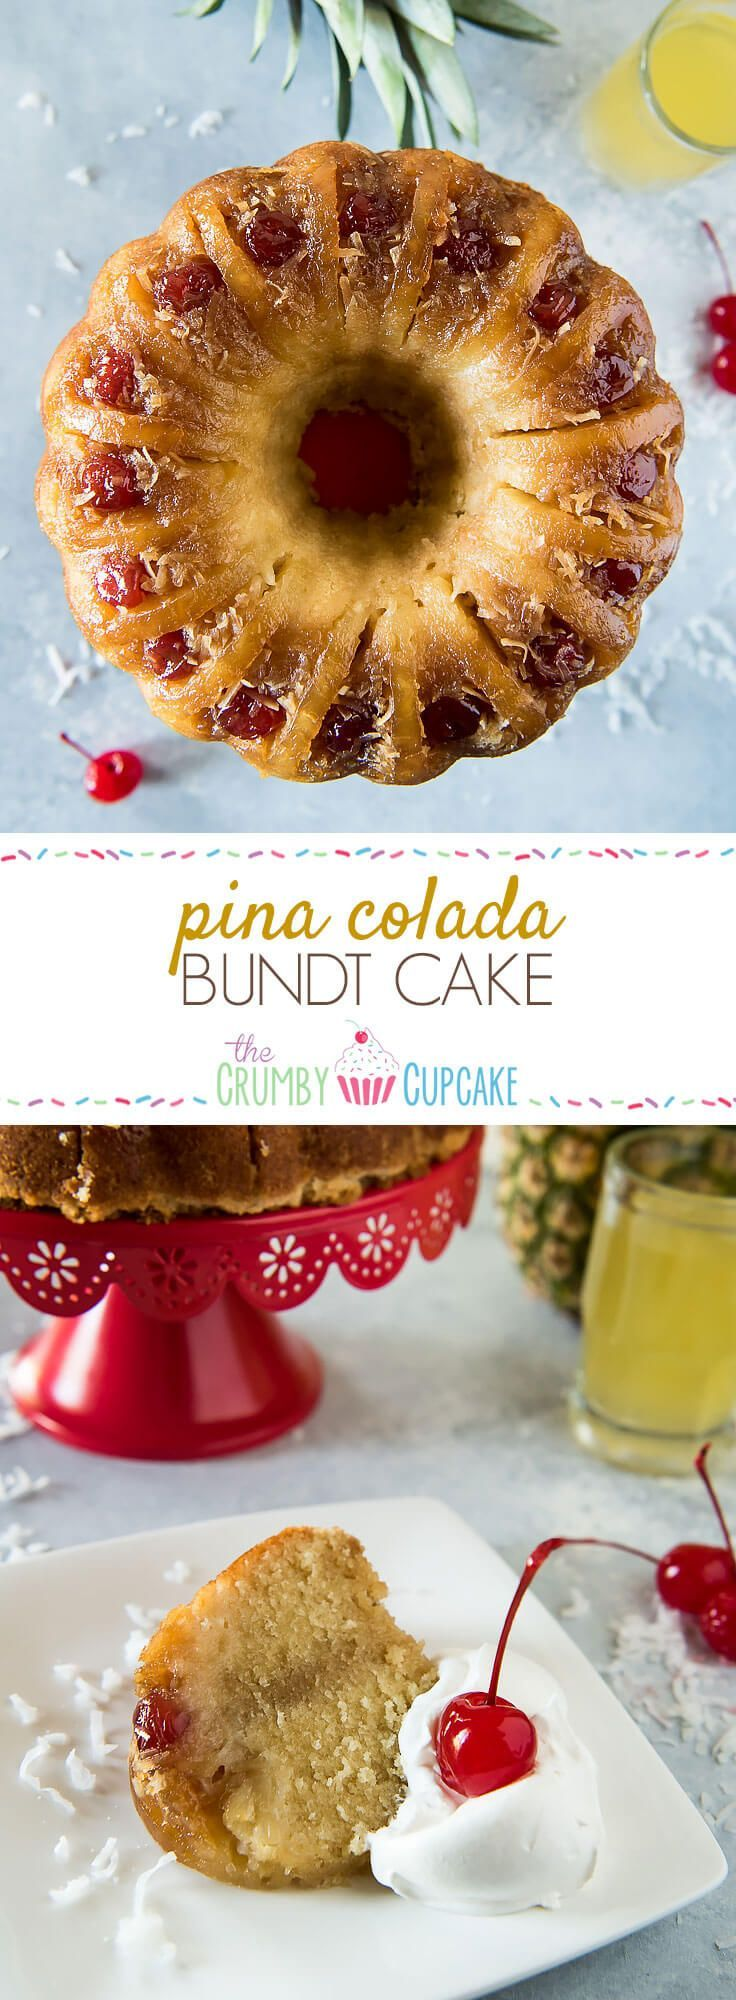 This Pina Colada Bundt Cake is unlike any you've had before! It takes the base of an old-fashioned cake & turns it into a moist, tropical confection!